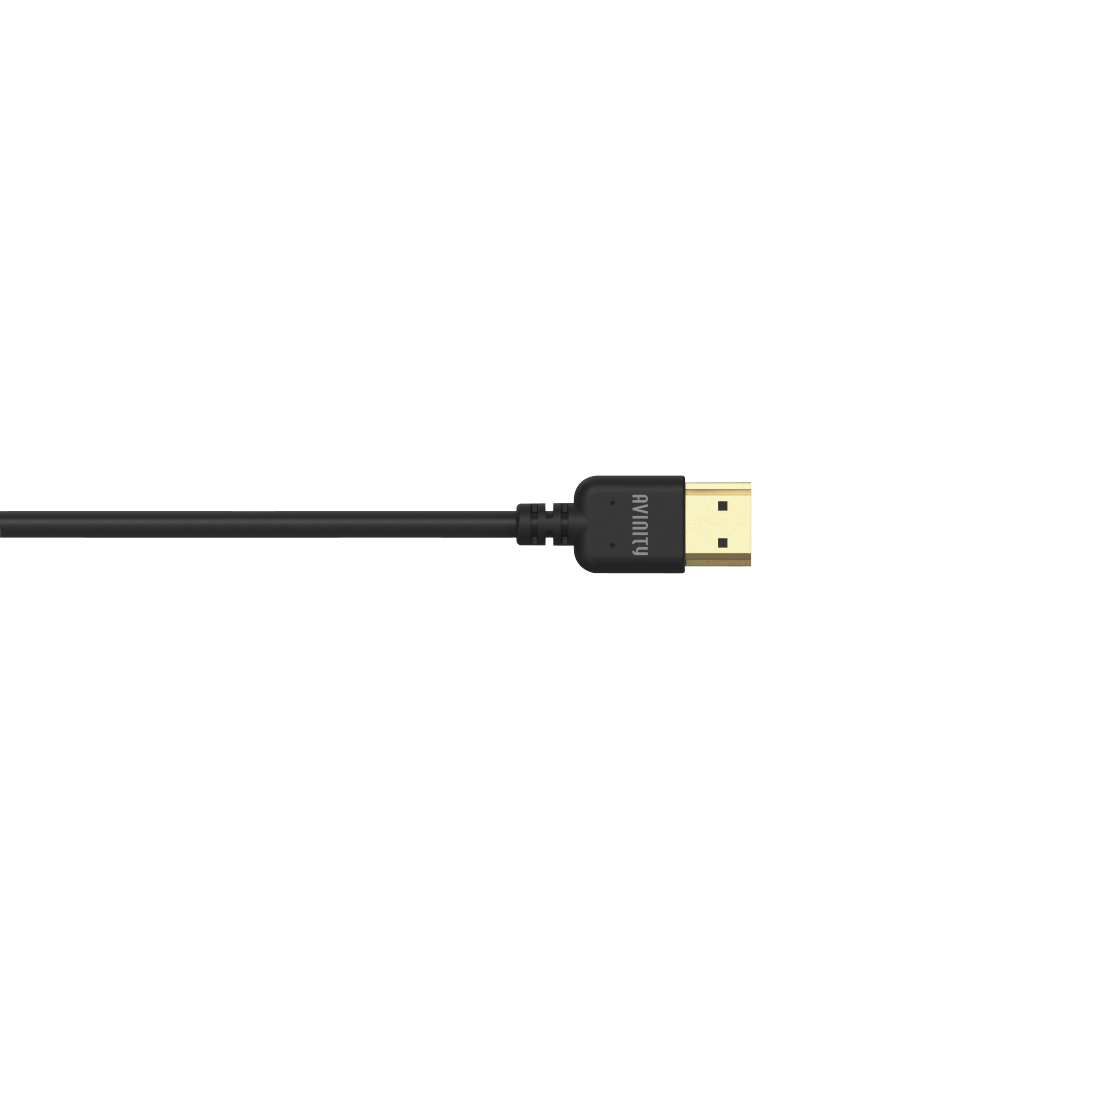 abx2 High-Res Image 2 - Avinity, High Speed HDMI™ Cable, Plug-Plug, ultra-flexible, gold-plated, Ethernet, 1.5 m